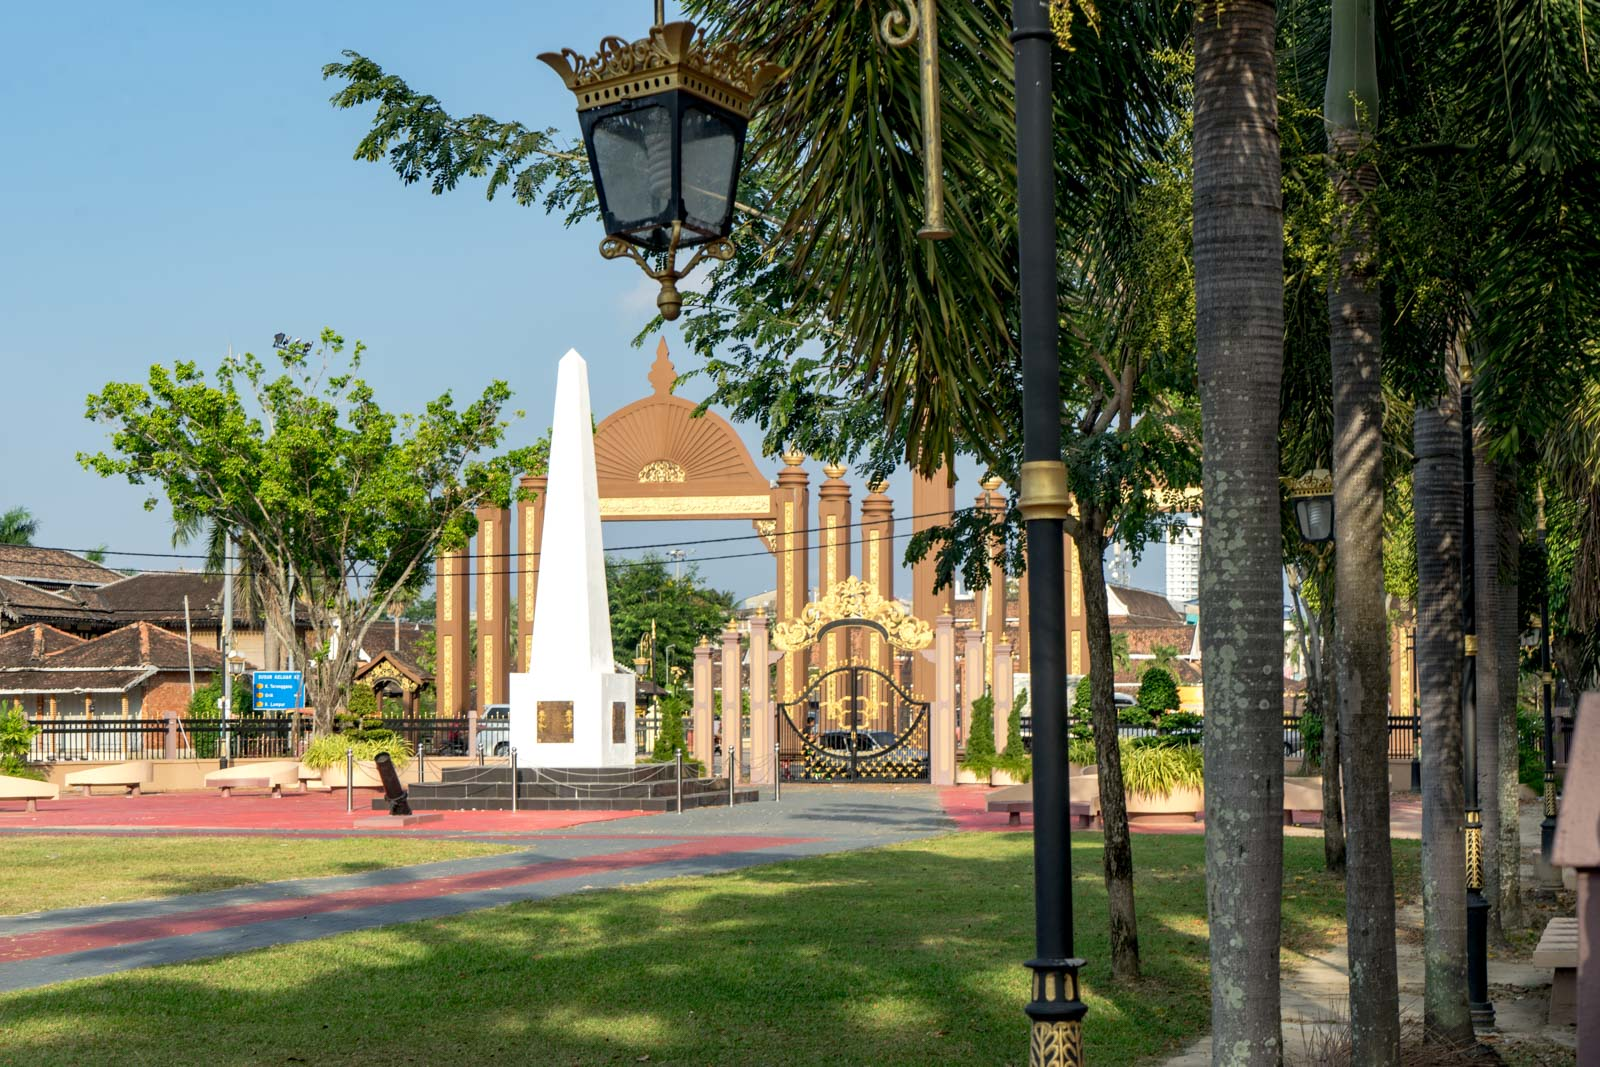 Things to see in Kota Bharu, Malaysia